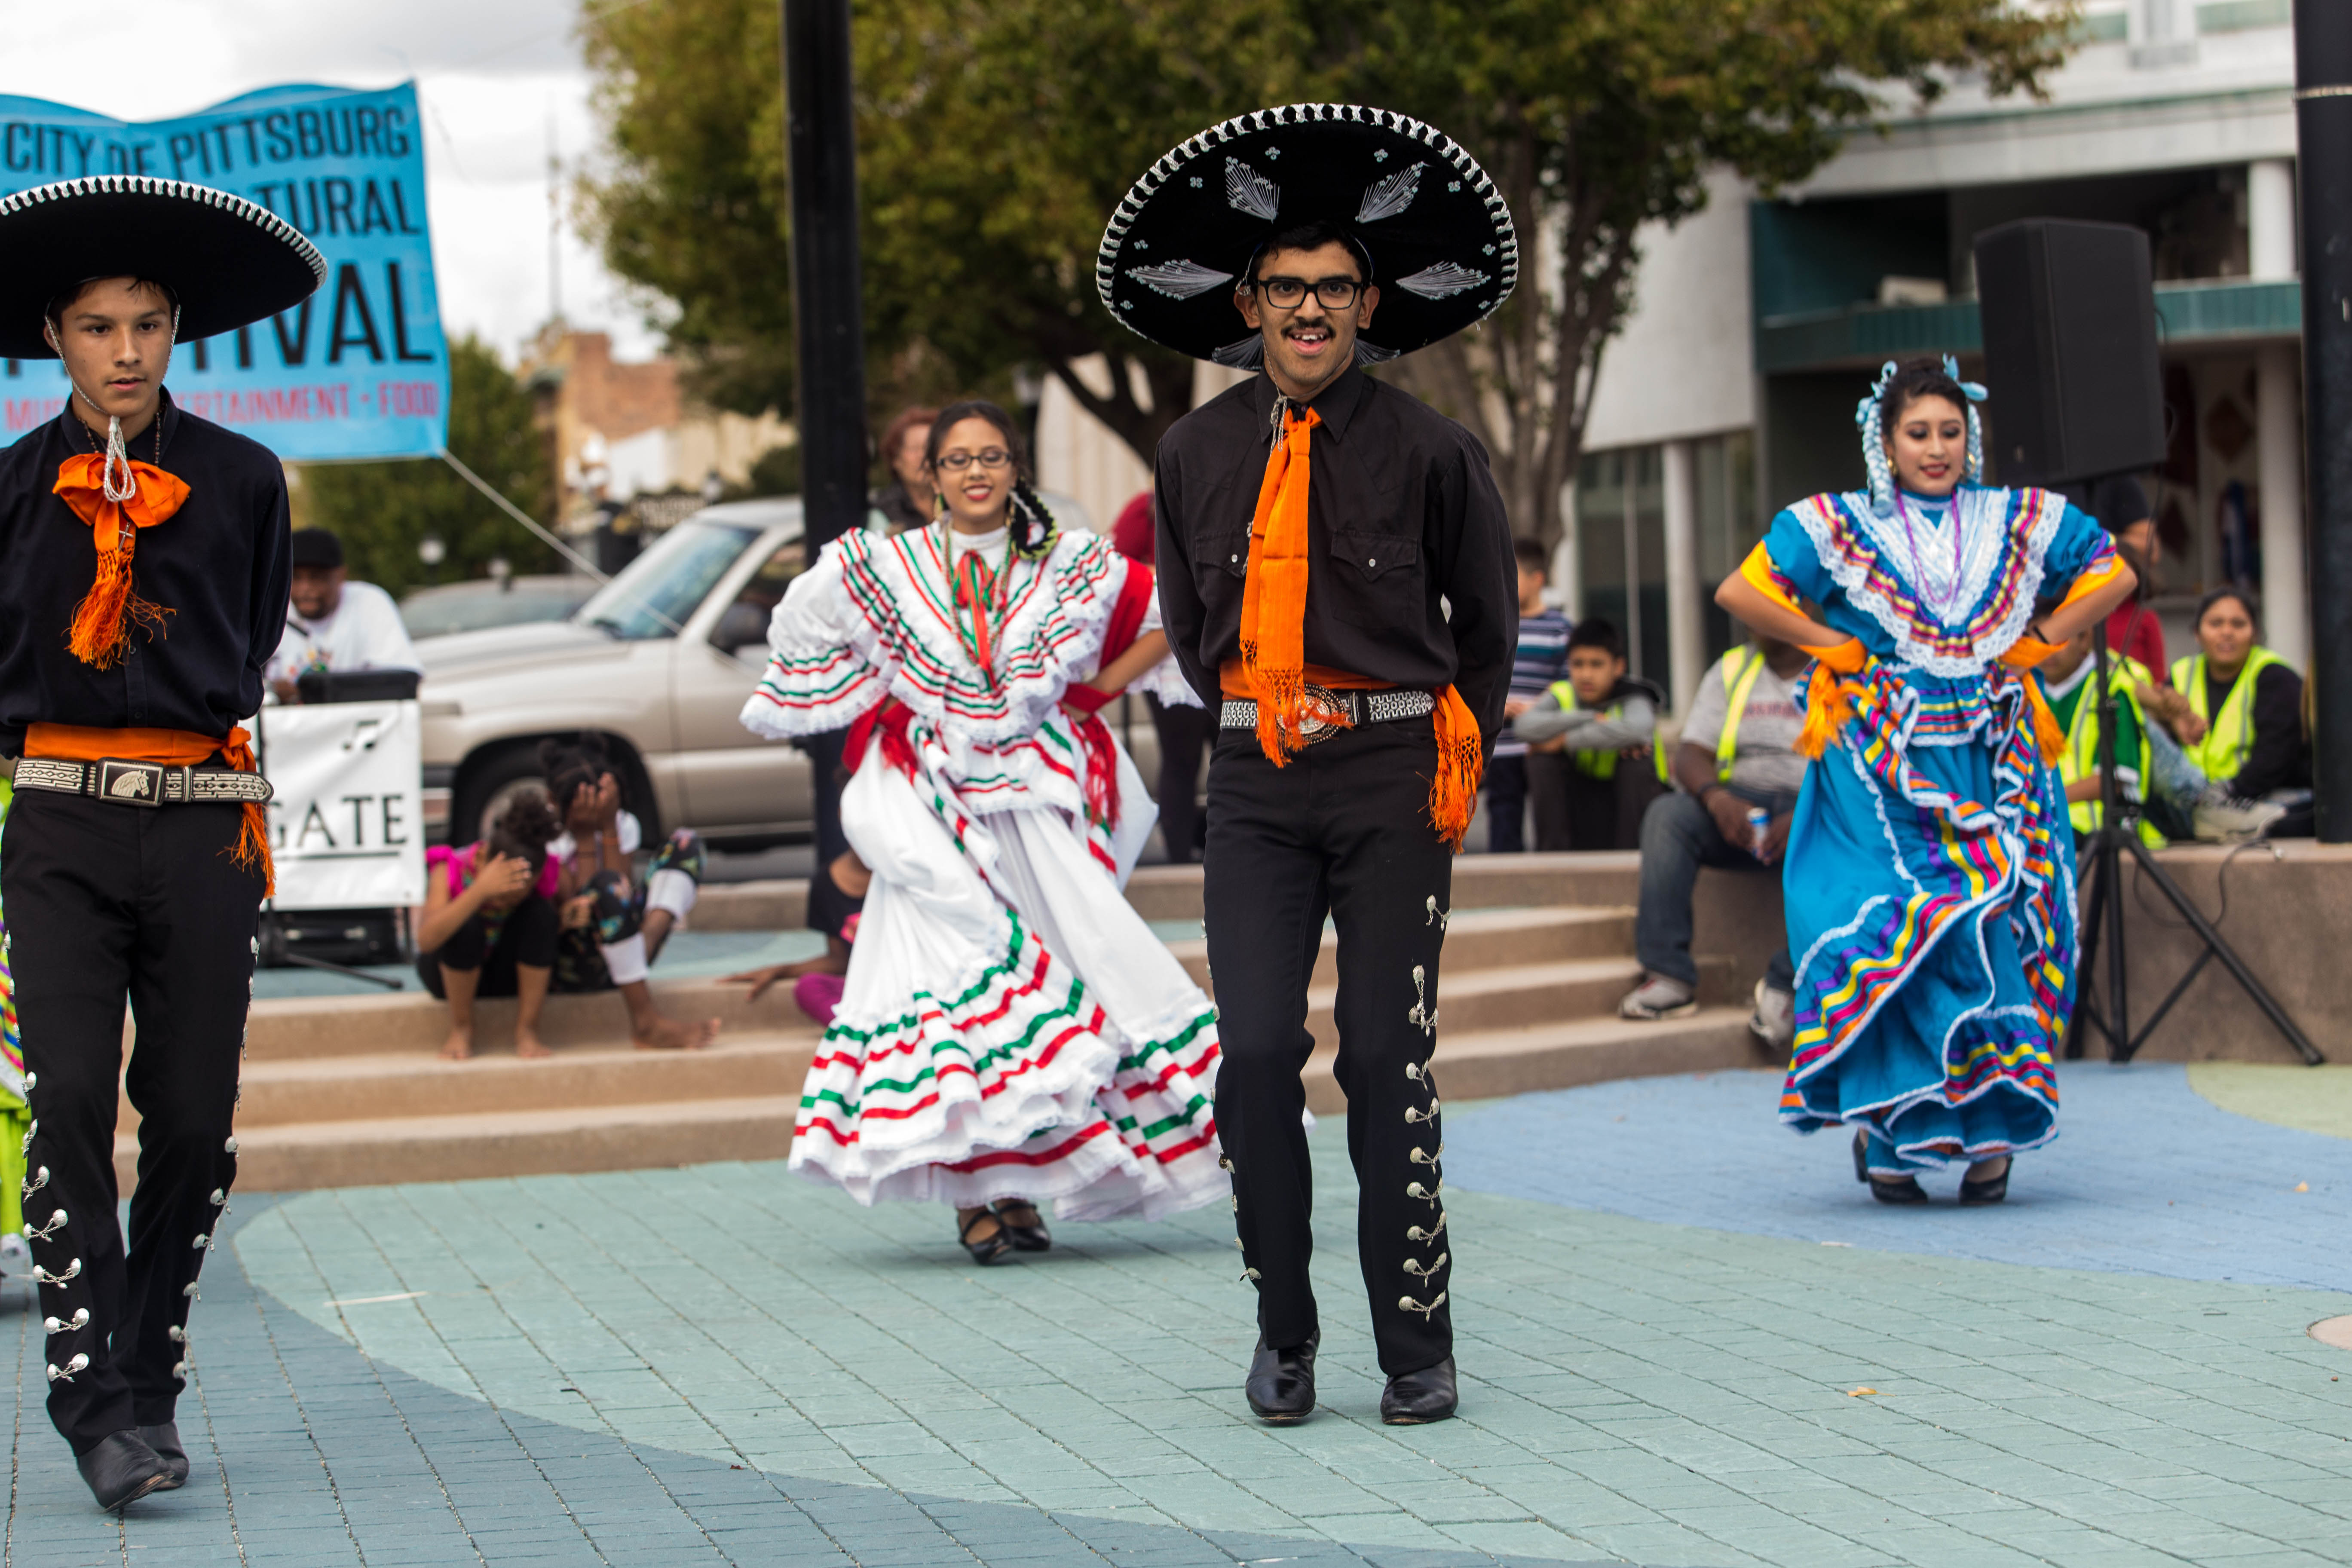 CITY_PITTSBURG_MULTICULTURAL_OCTOBER_2016 (636)